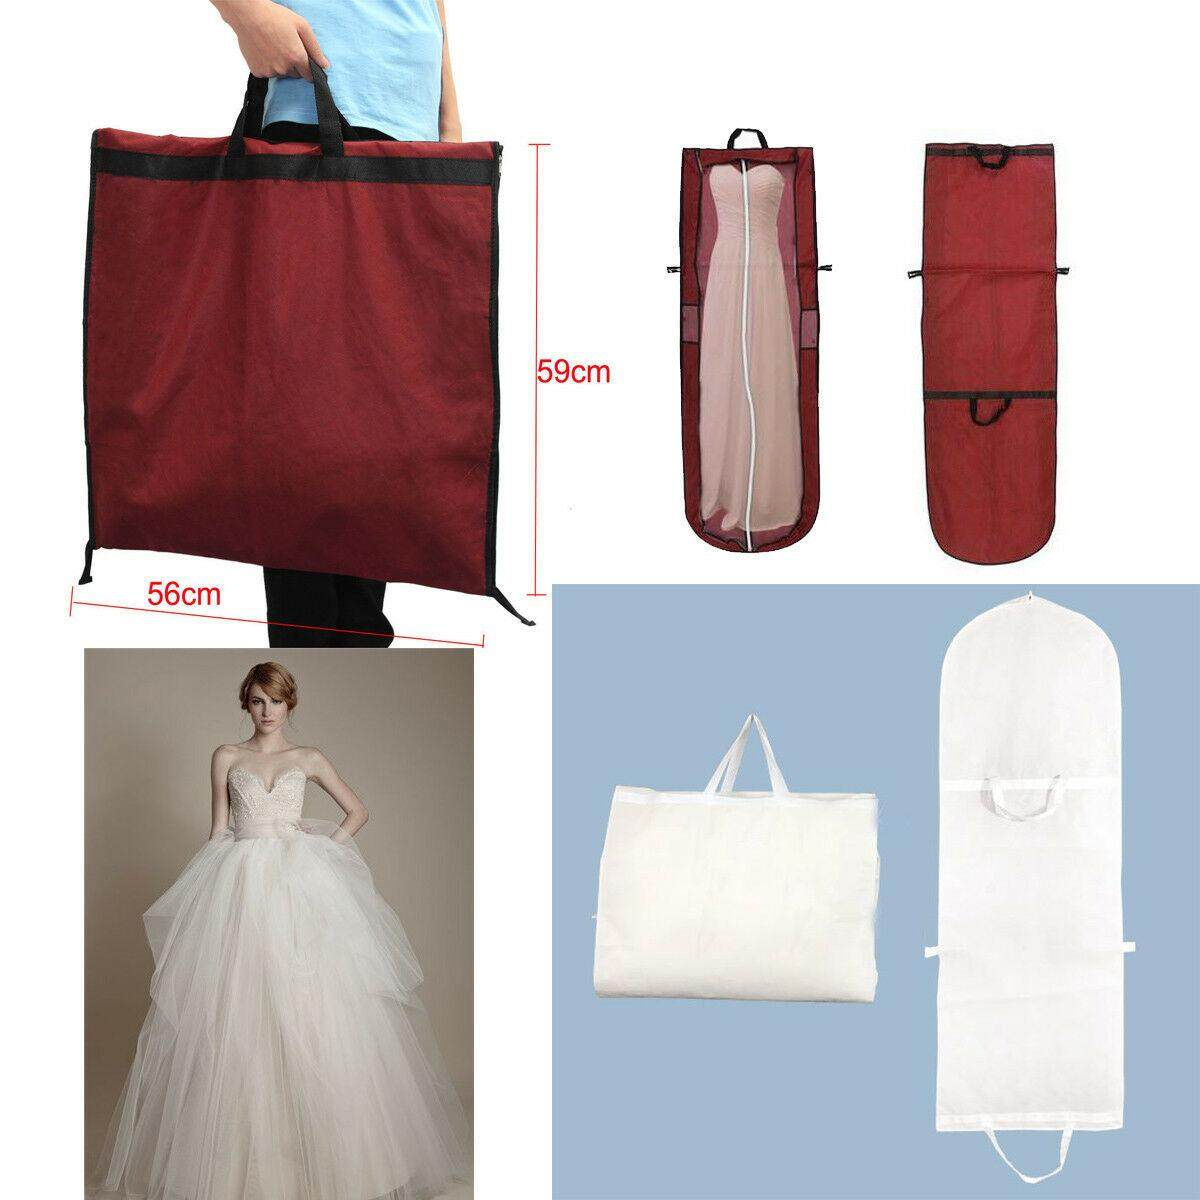 good service long dress cover storage bag for bridesmaid bridal wedding  gown dress carrier